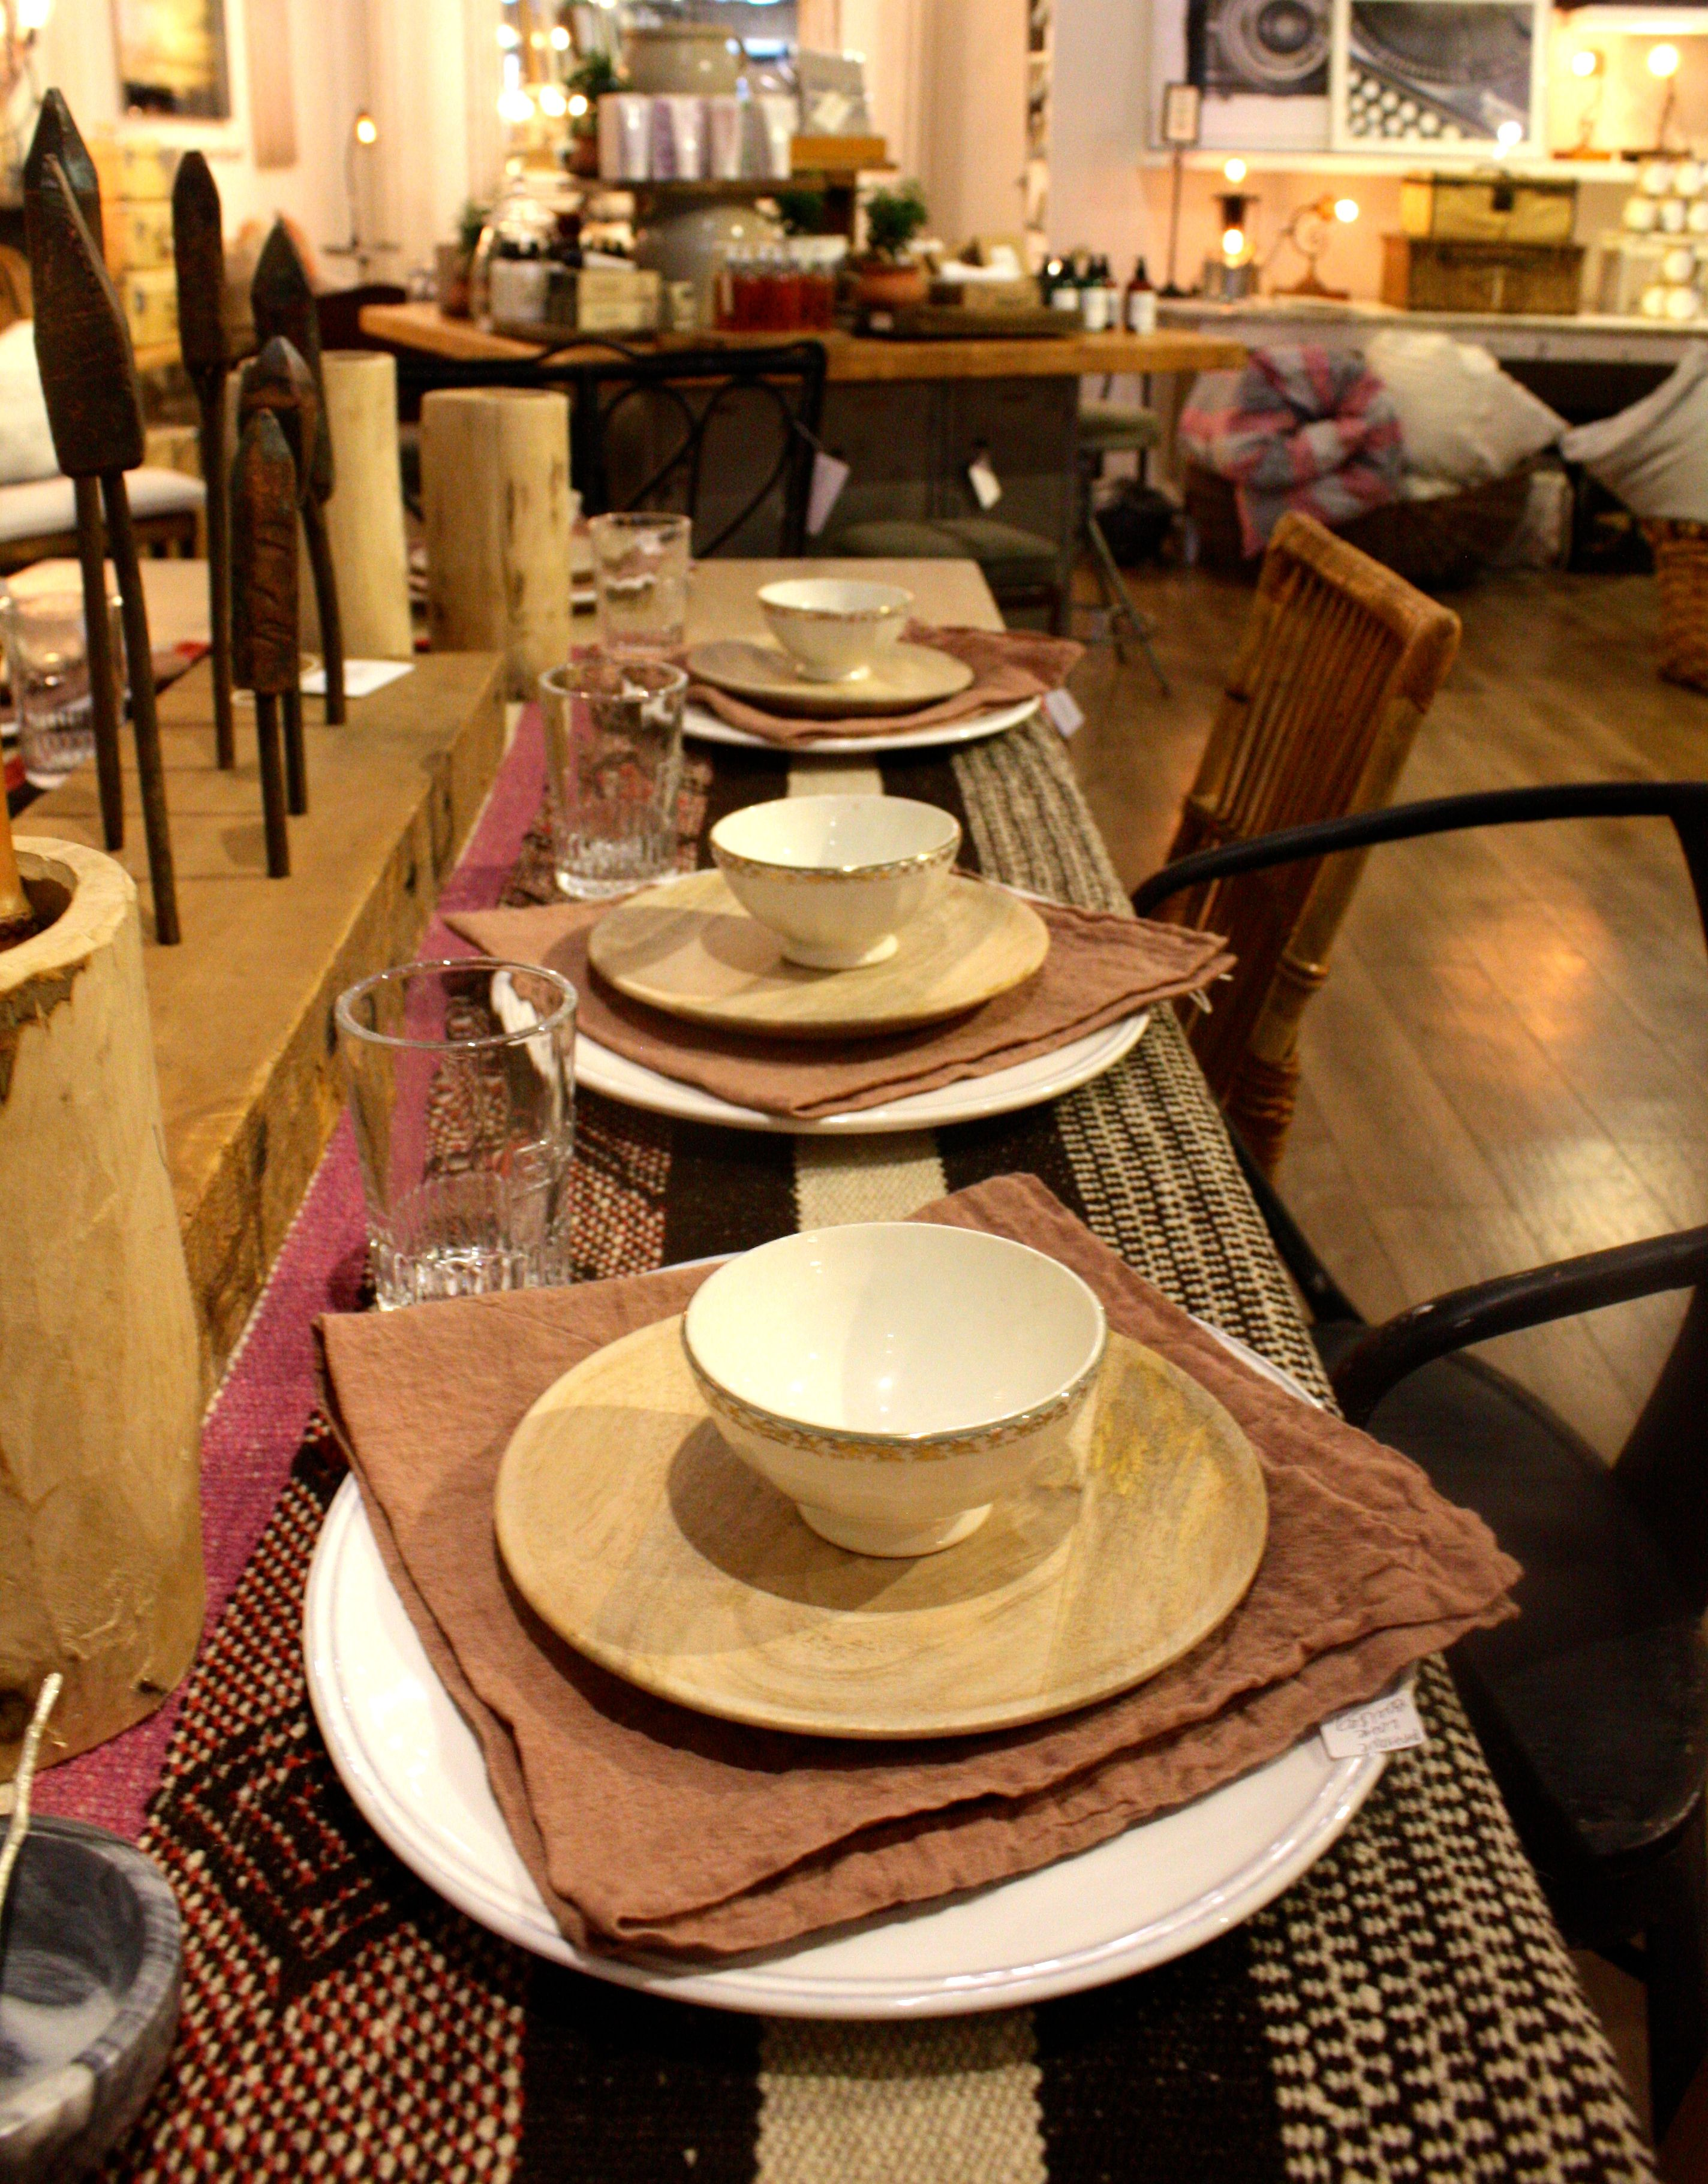 Antique French Latte Bowls, Handwoven Peruvian Rugs make a perfect table setting at A Beautiful Mess.